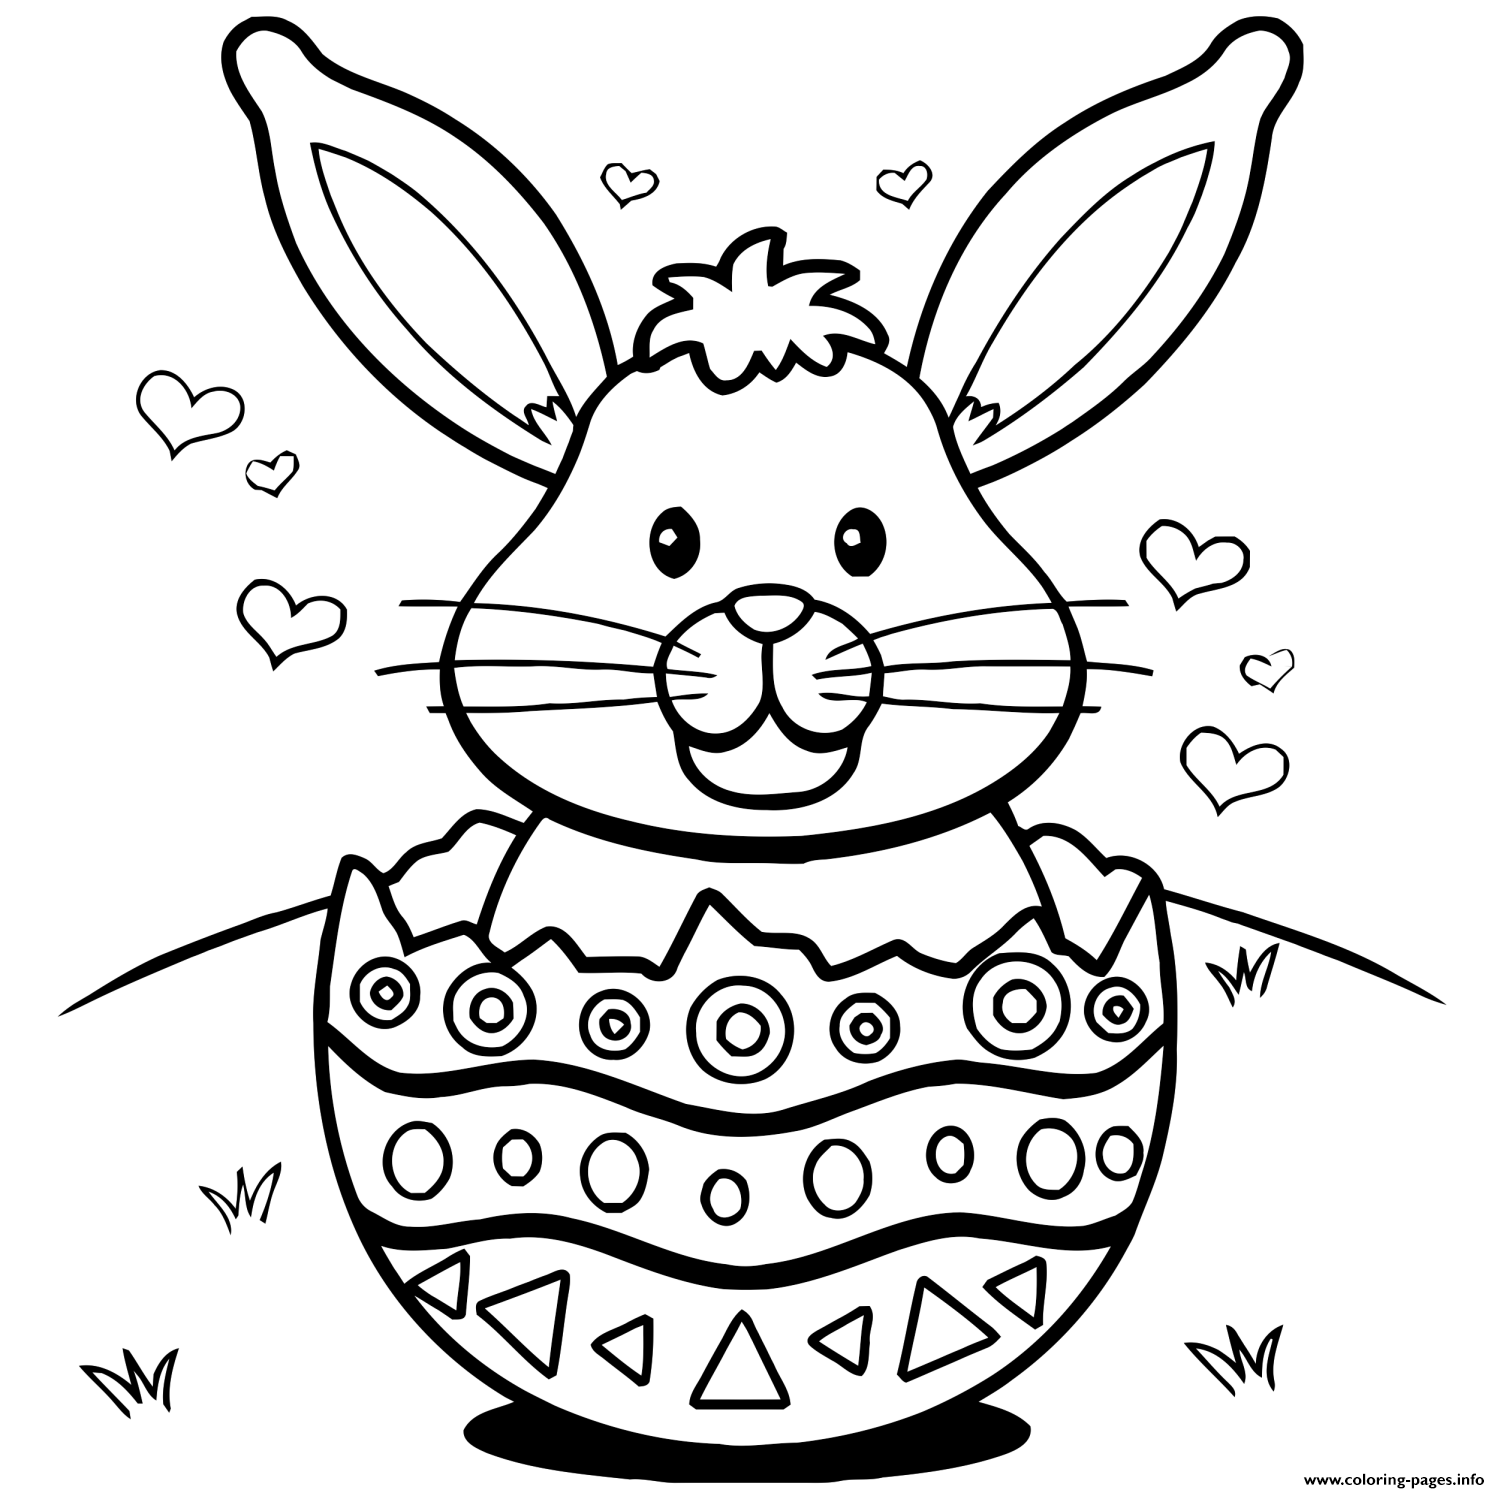 coloring easter bunnies easter bunny with eggs coloring page at getdrawings free coloring easter bunnies